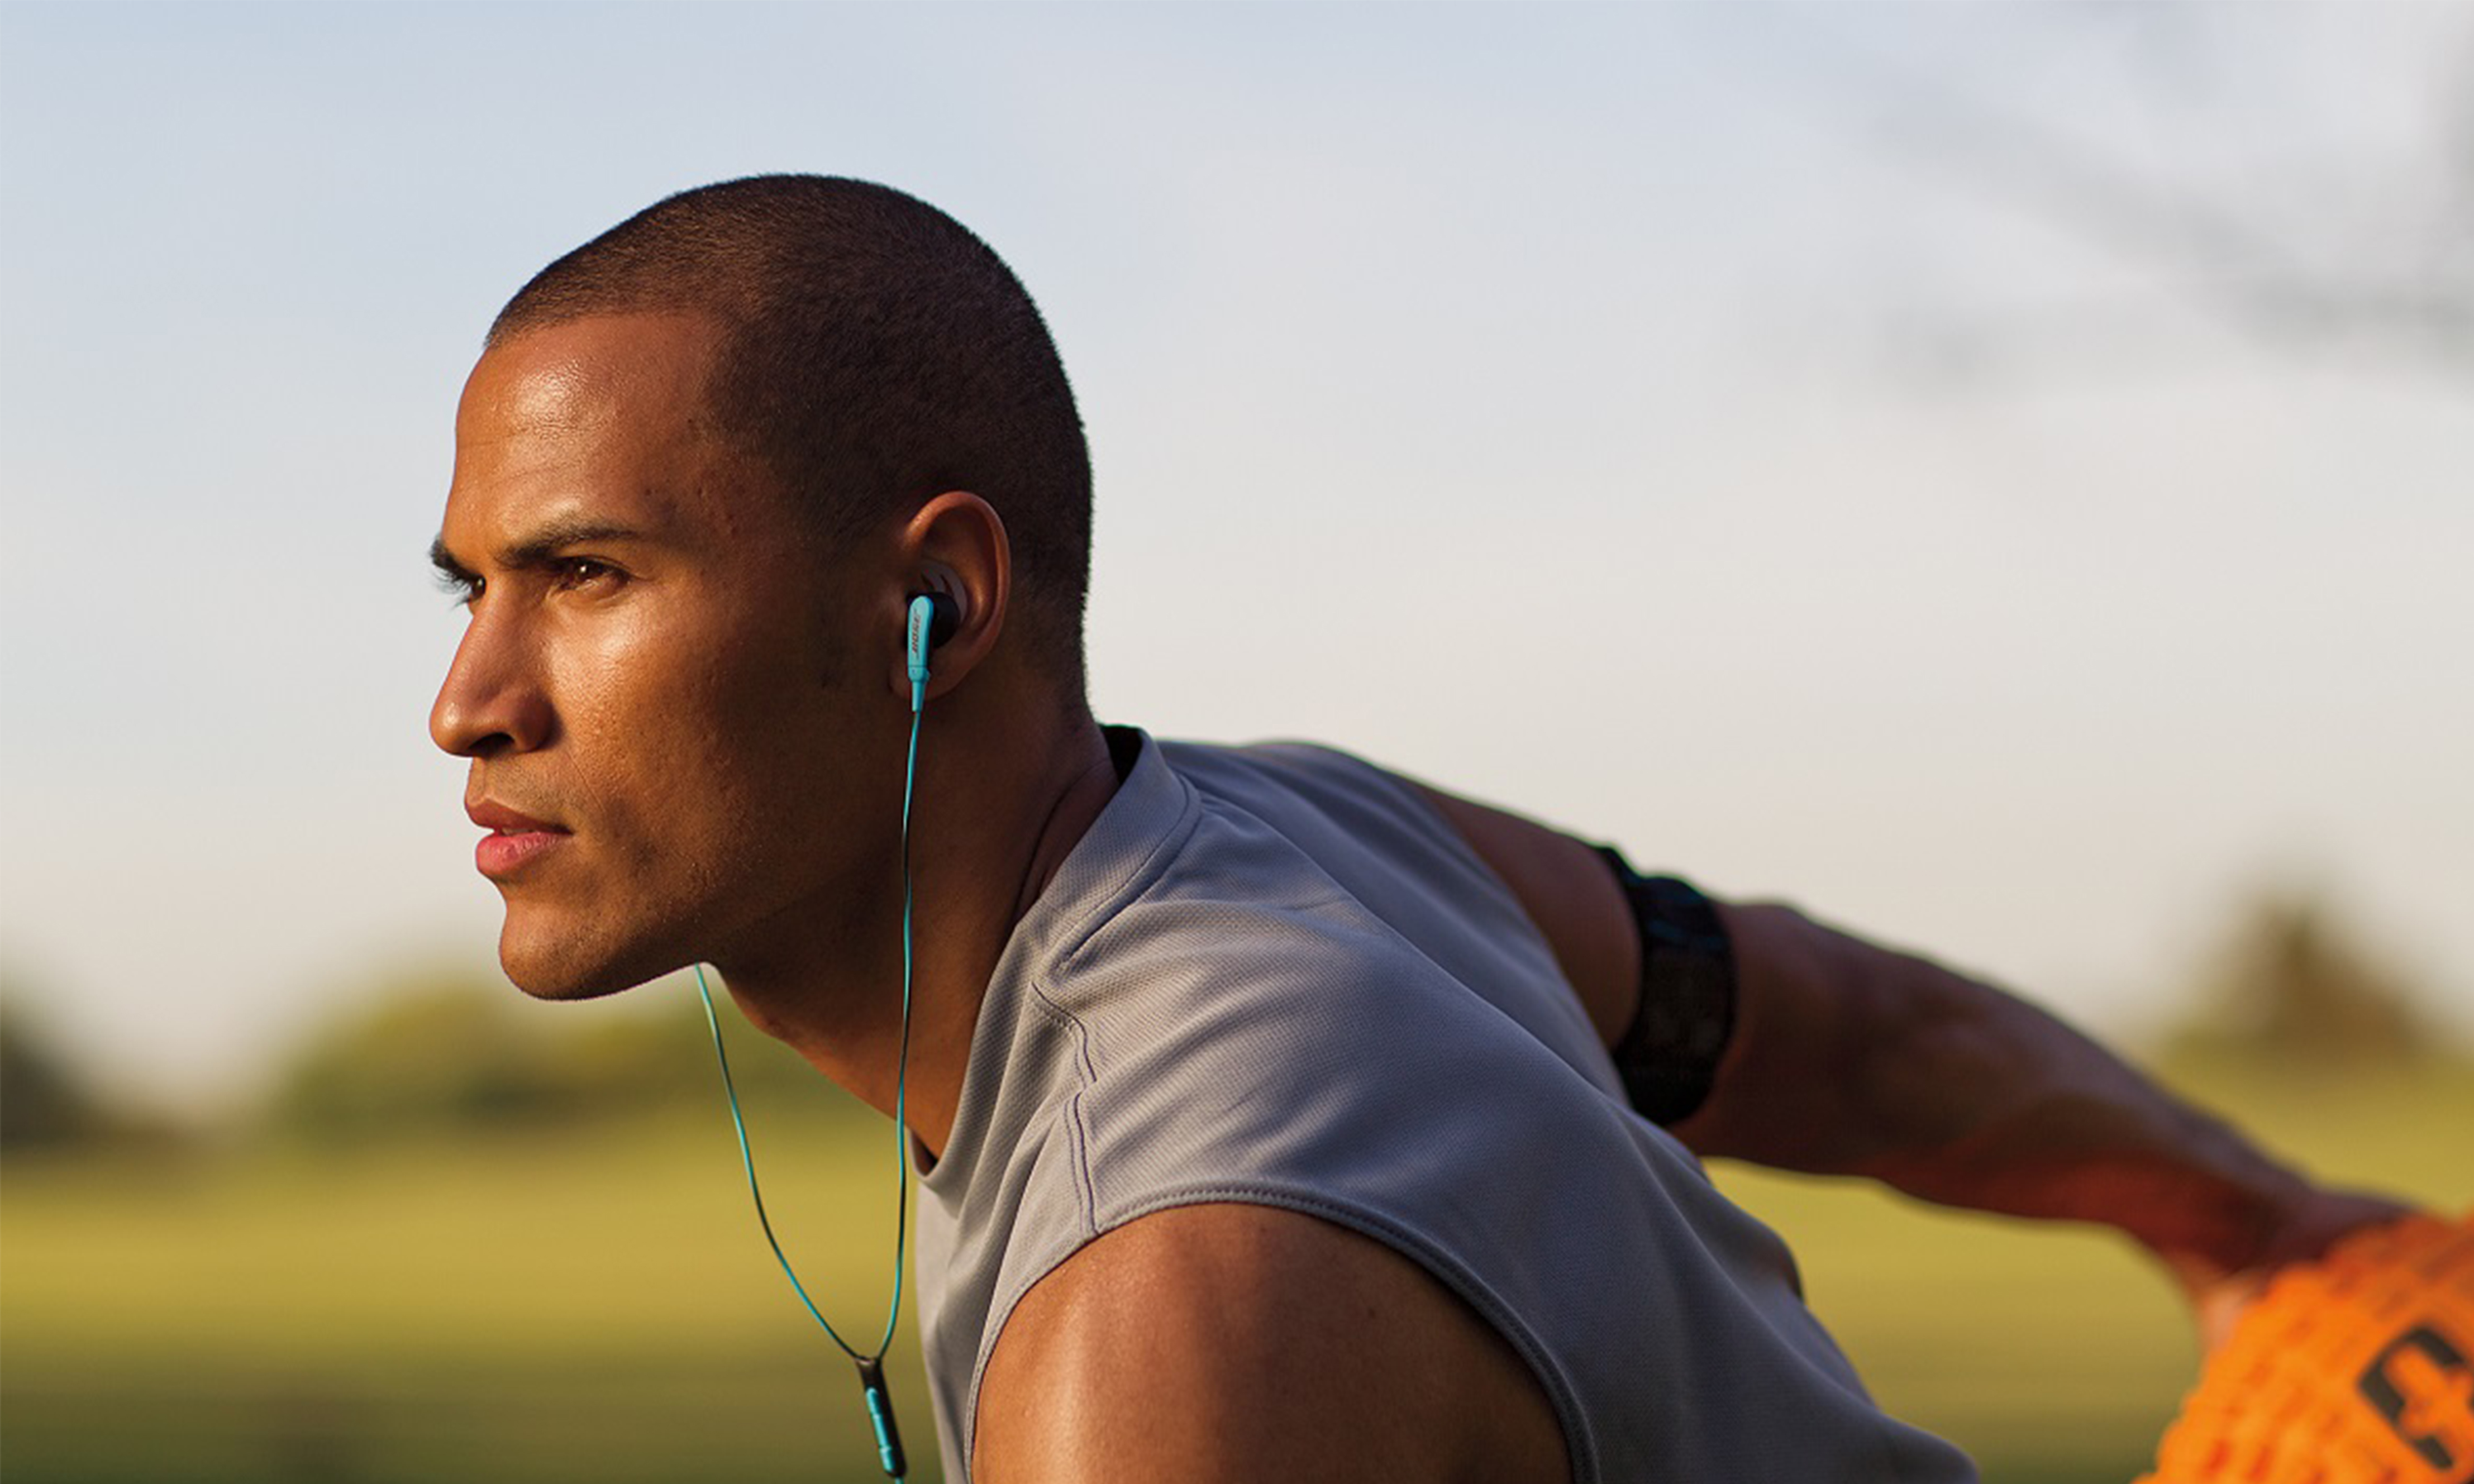 Top 10 Best Headphones for Working Out in 2019